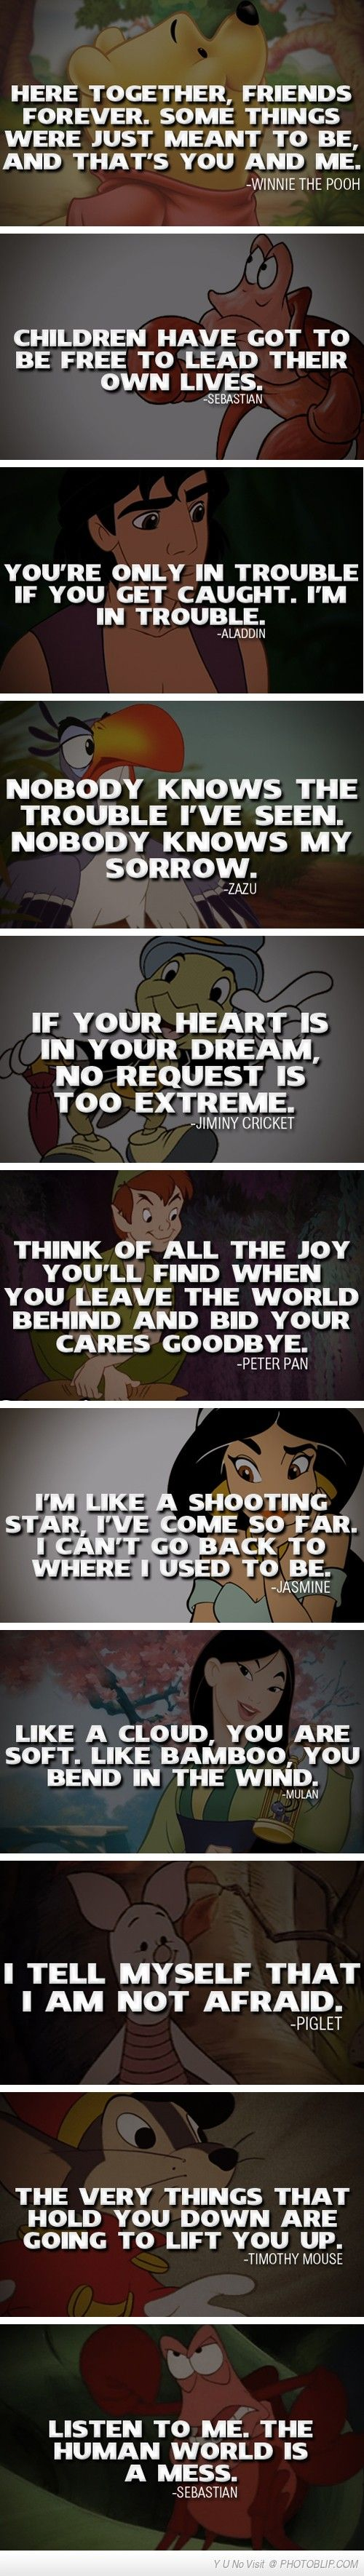 Disney Quote Compilation. It's cool to read these in the voices of the characters... Just saying.